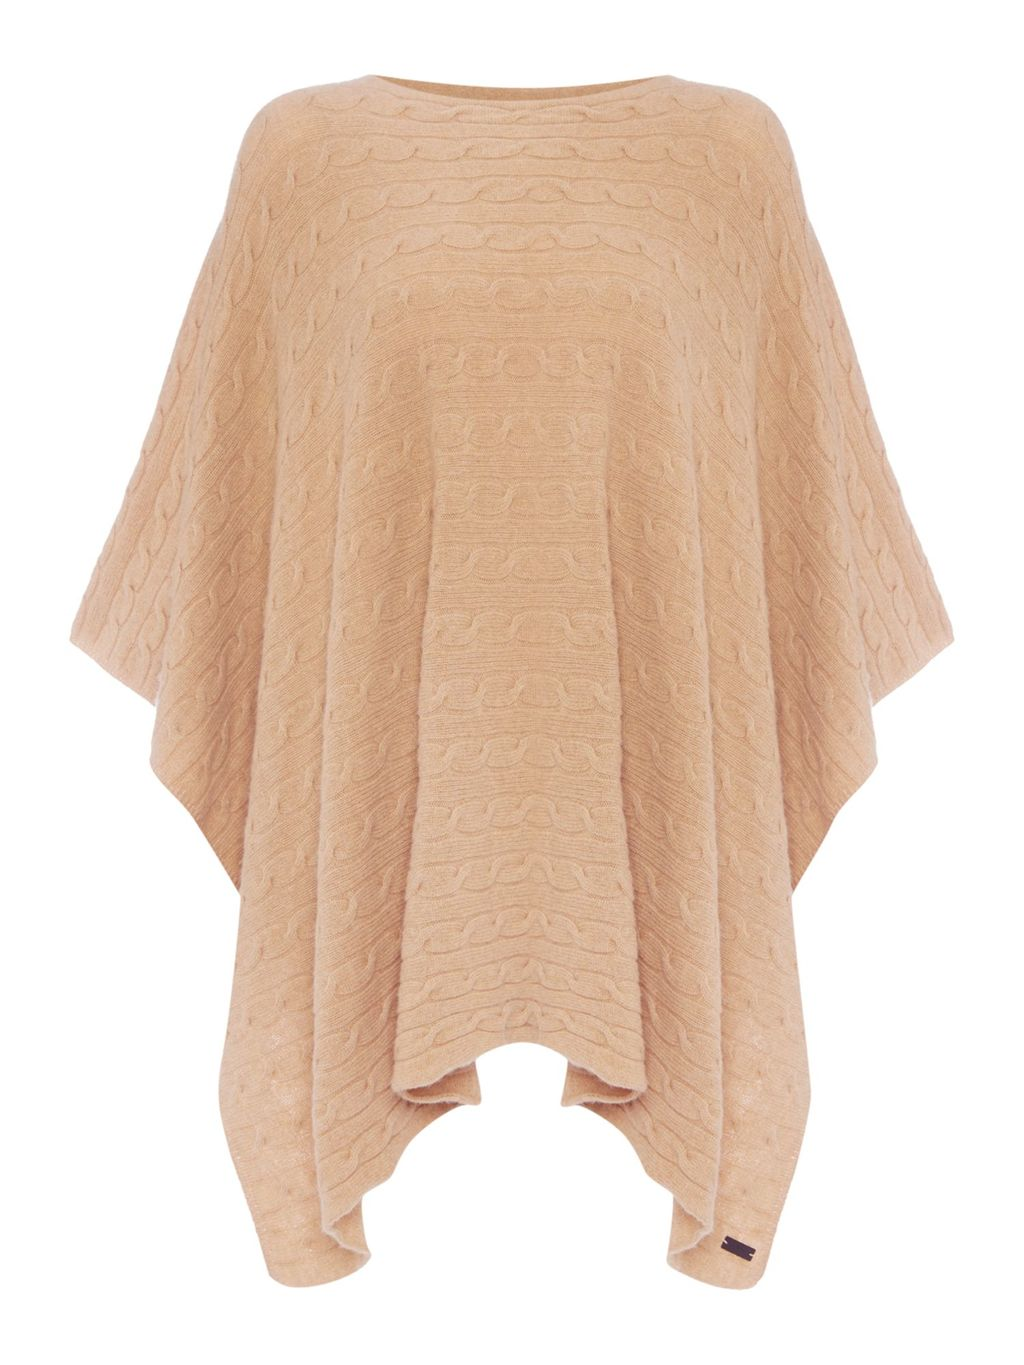 Cable Knit Poncho, Beige - neckline: round neck; pattern: plain; length: below the bottom; style: poncho; predominant colour: camel; occasions: casual, creative work; fibres: wool - mix; fit: loose; hip detail: dip hem; sleeve length: long sleeve; texture group: knits/crochet; pattern type: knitted - fine stitch; sleeve style: cape/poncho sleeve; season: s/s 2016; wardrobe: highlight